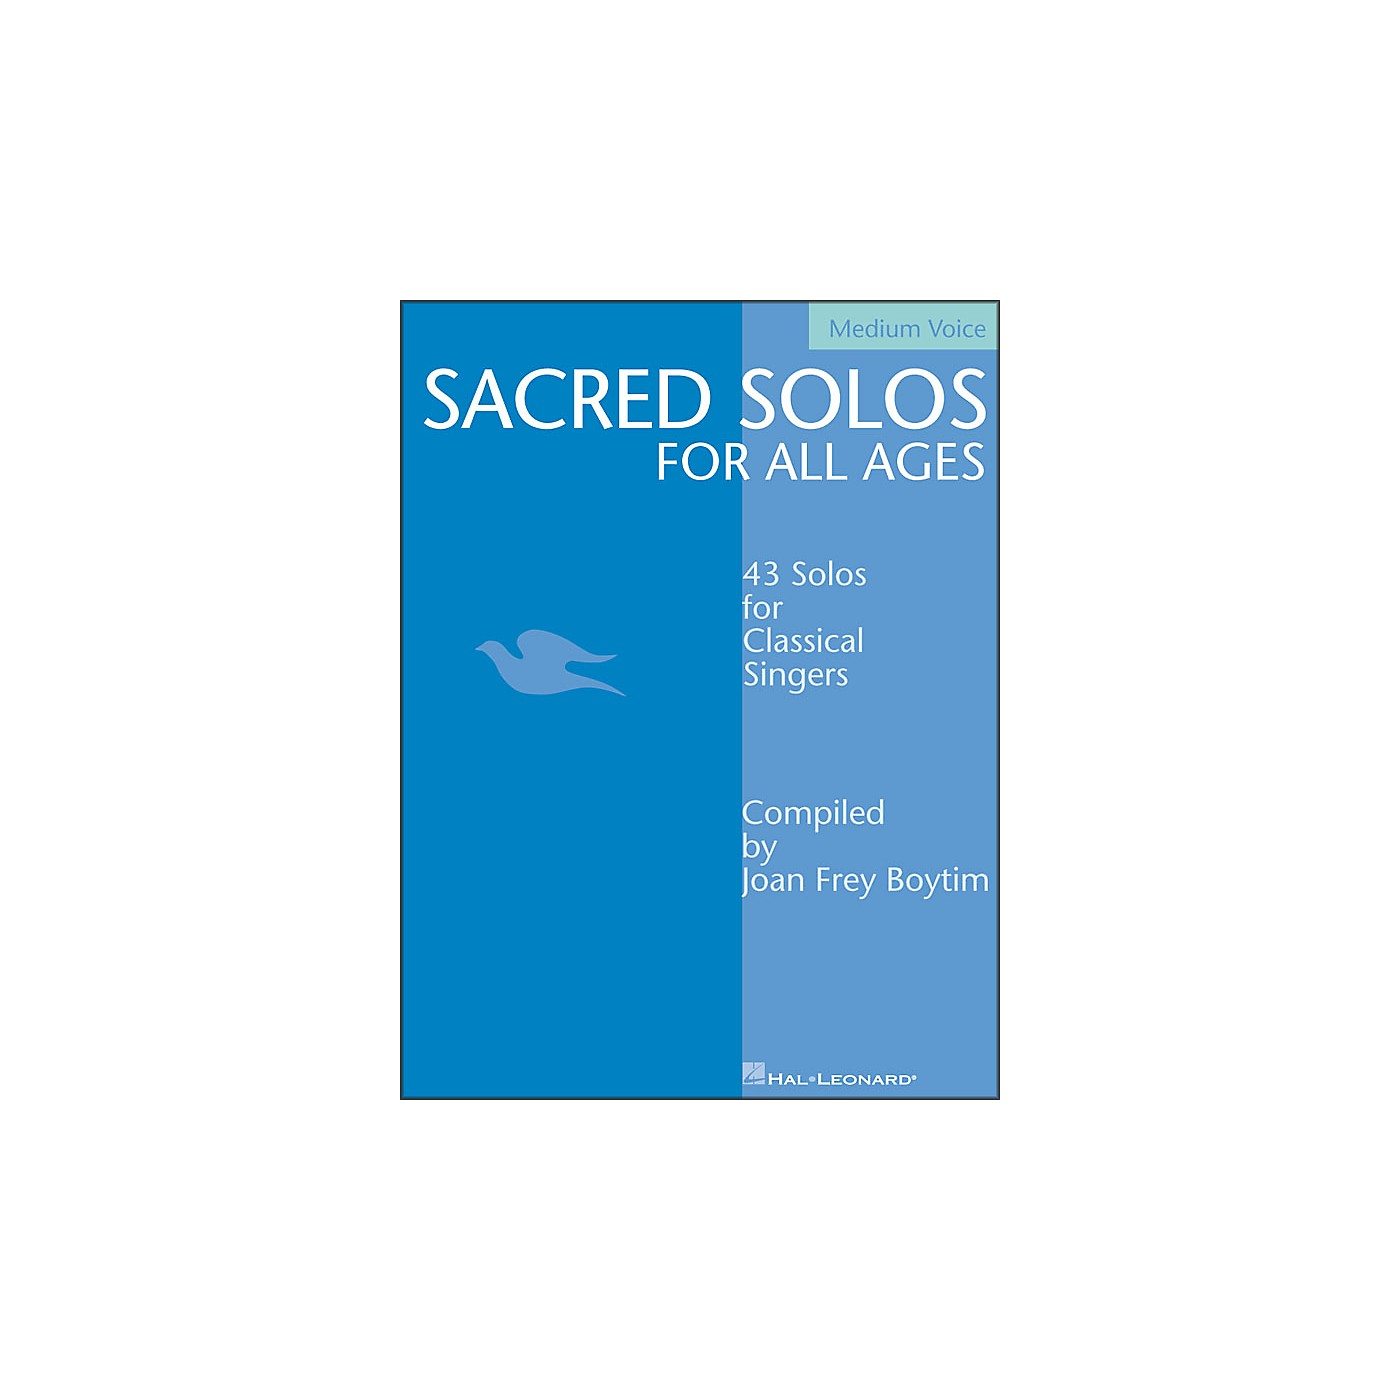 Hal Leonard Sacred Solos for All Ages for Medium Voice thumbnail